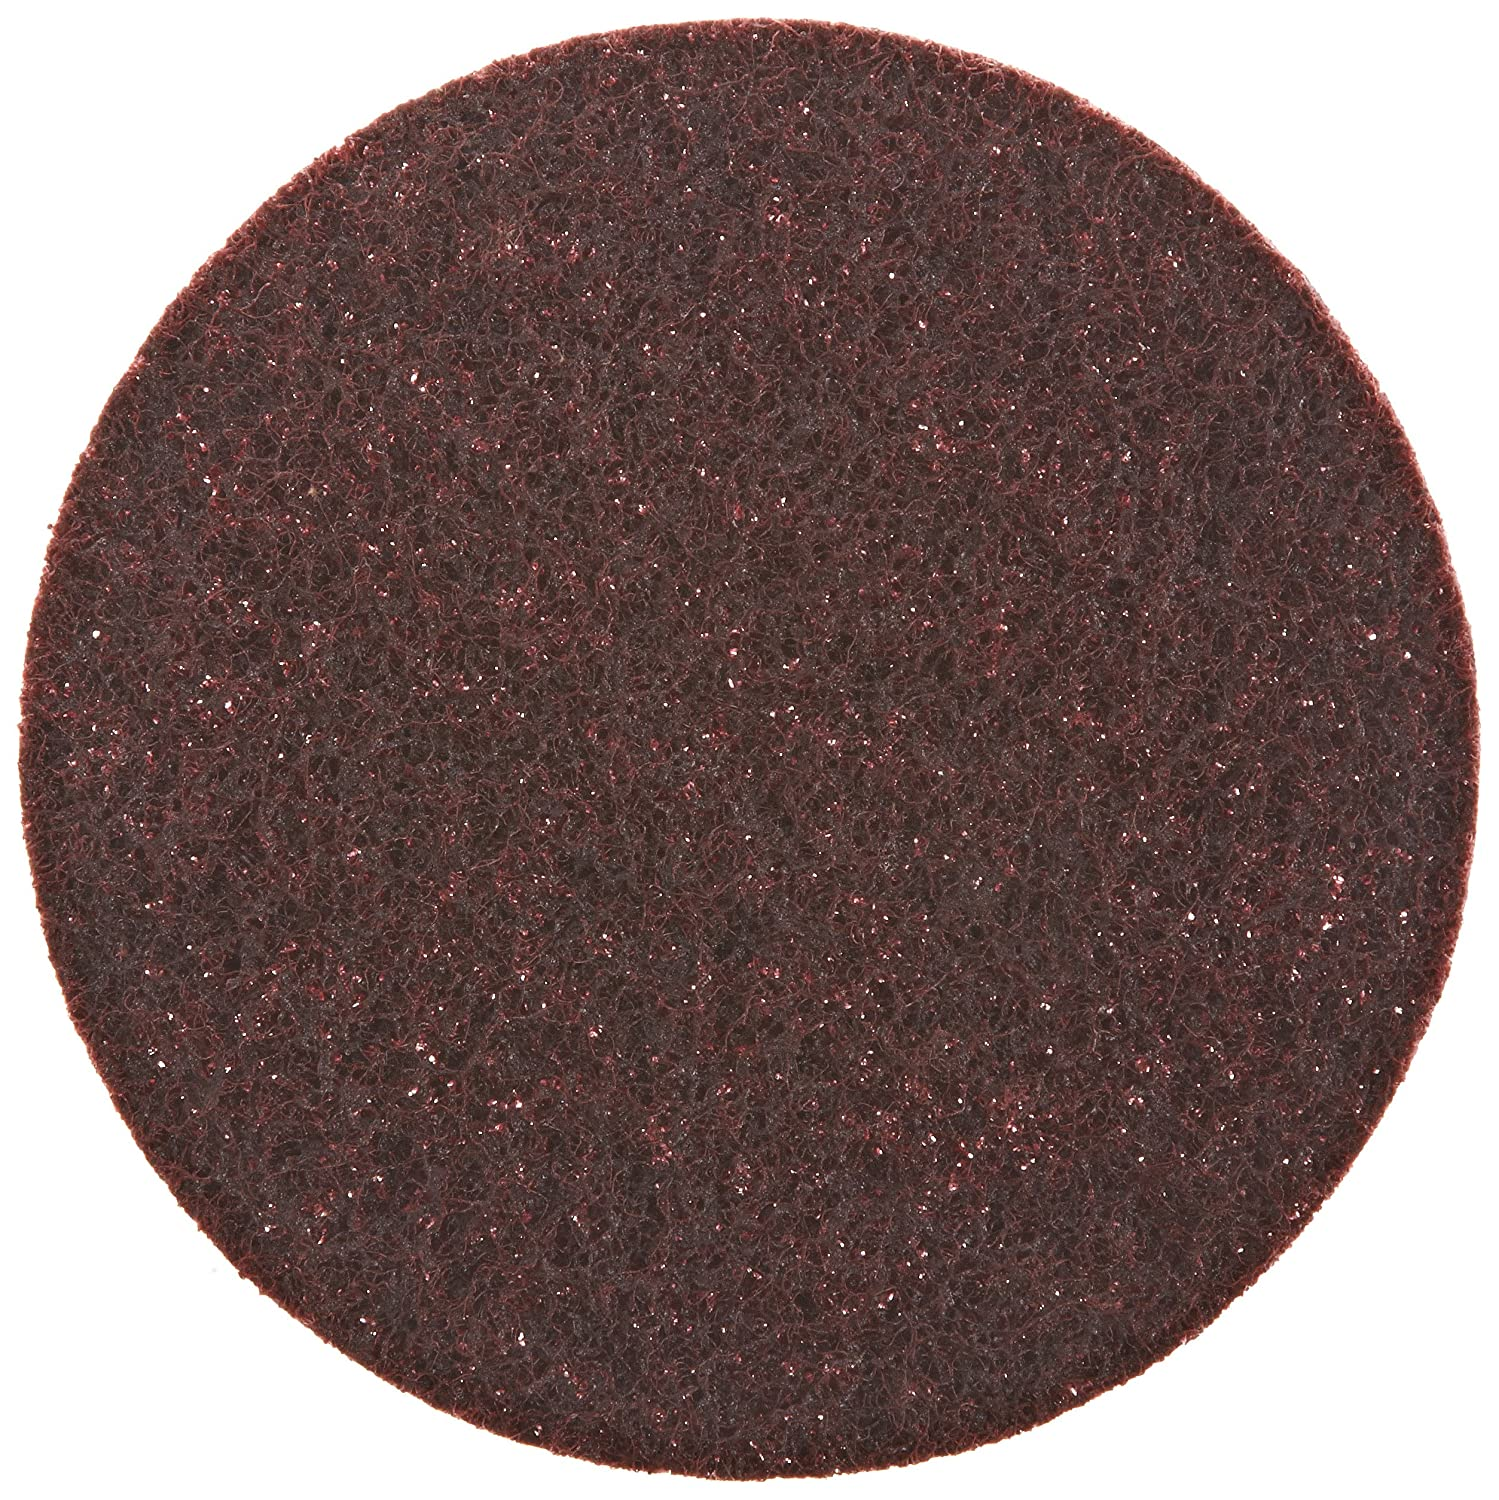 Scotch-Brite(TM) Surface Conditioning Disc, Hook and Loop Attachment, Aluminum Oxide, 5 Diameter, NH A Medium (Pack of 10) 3M SC-DH